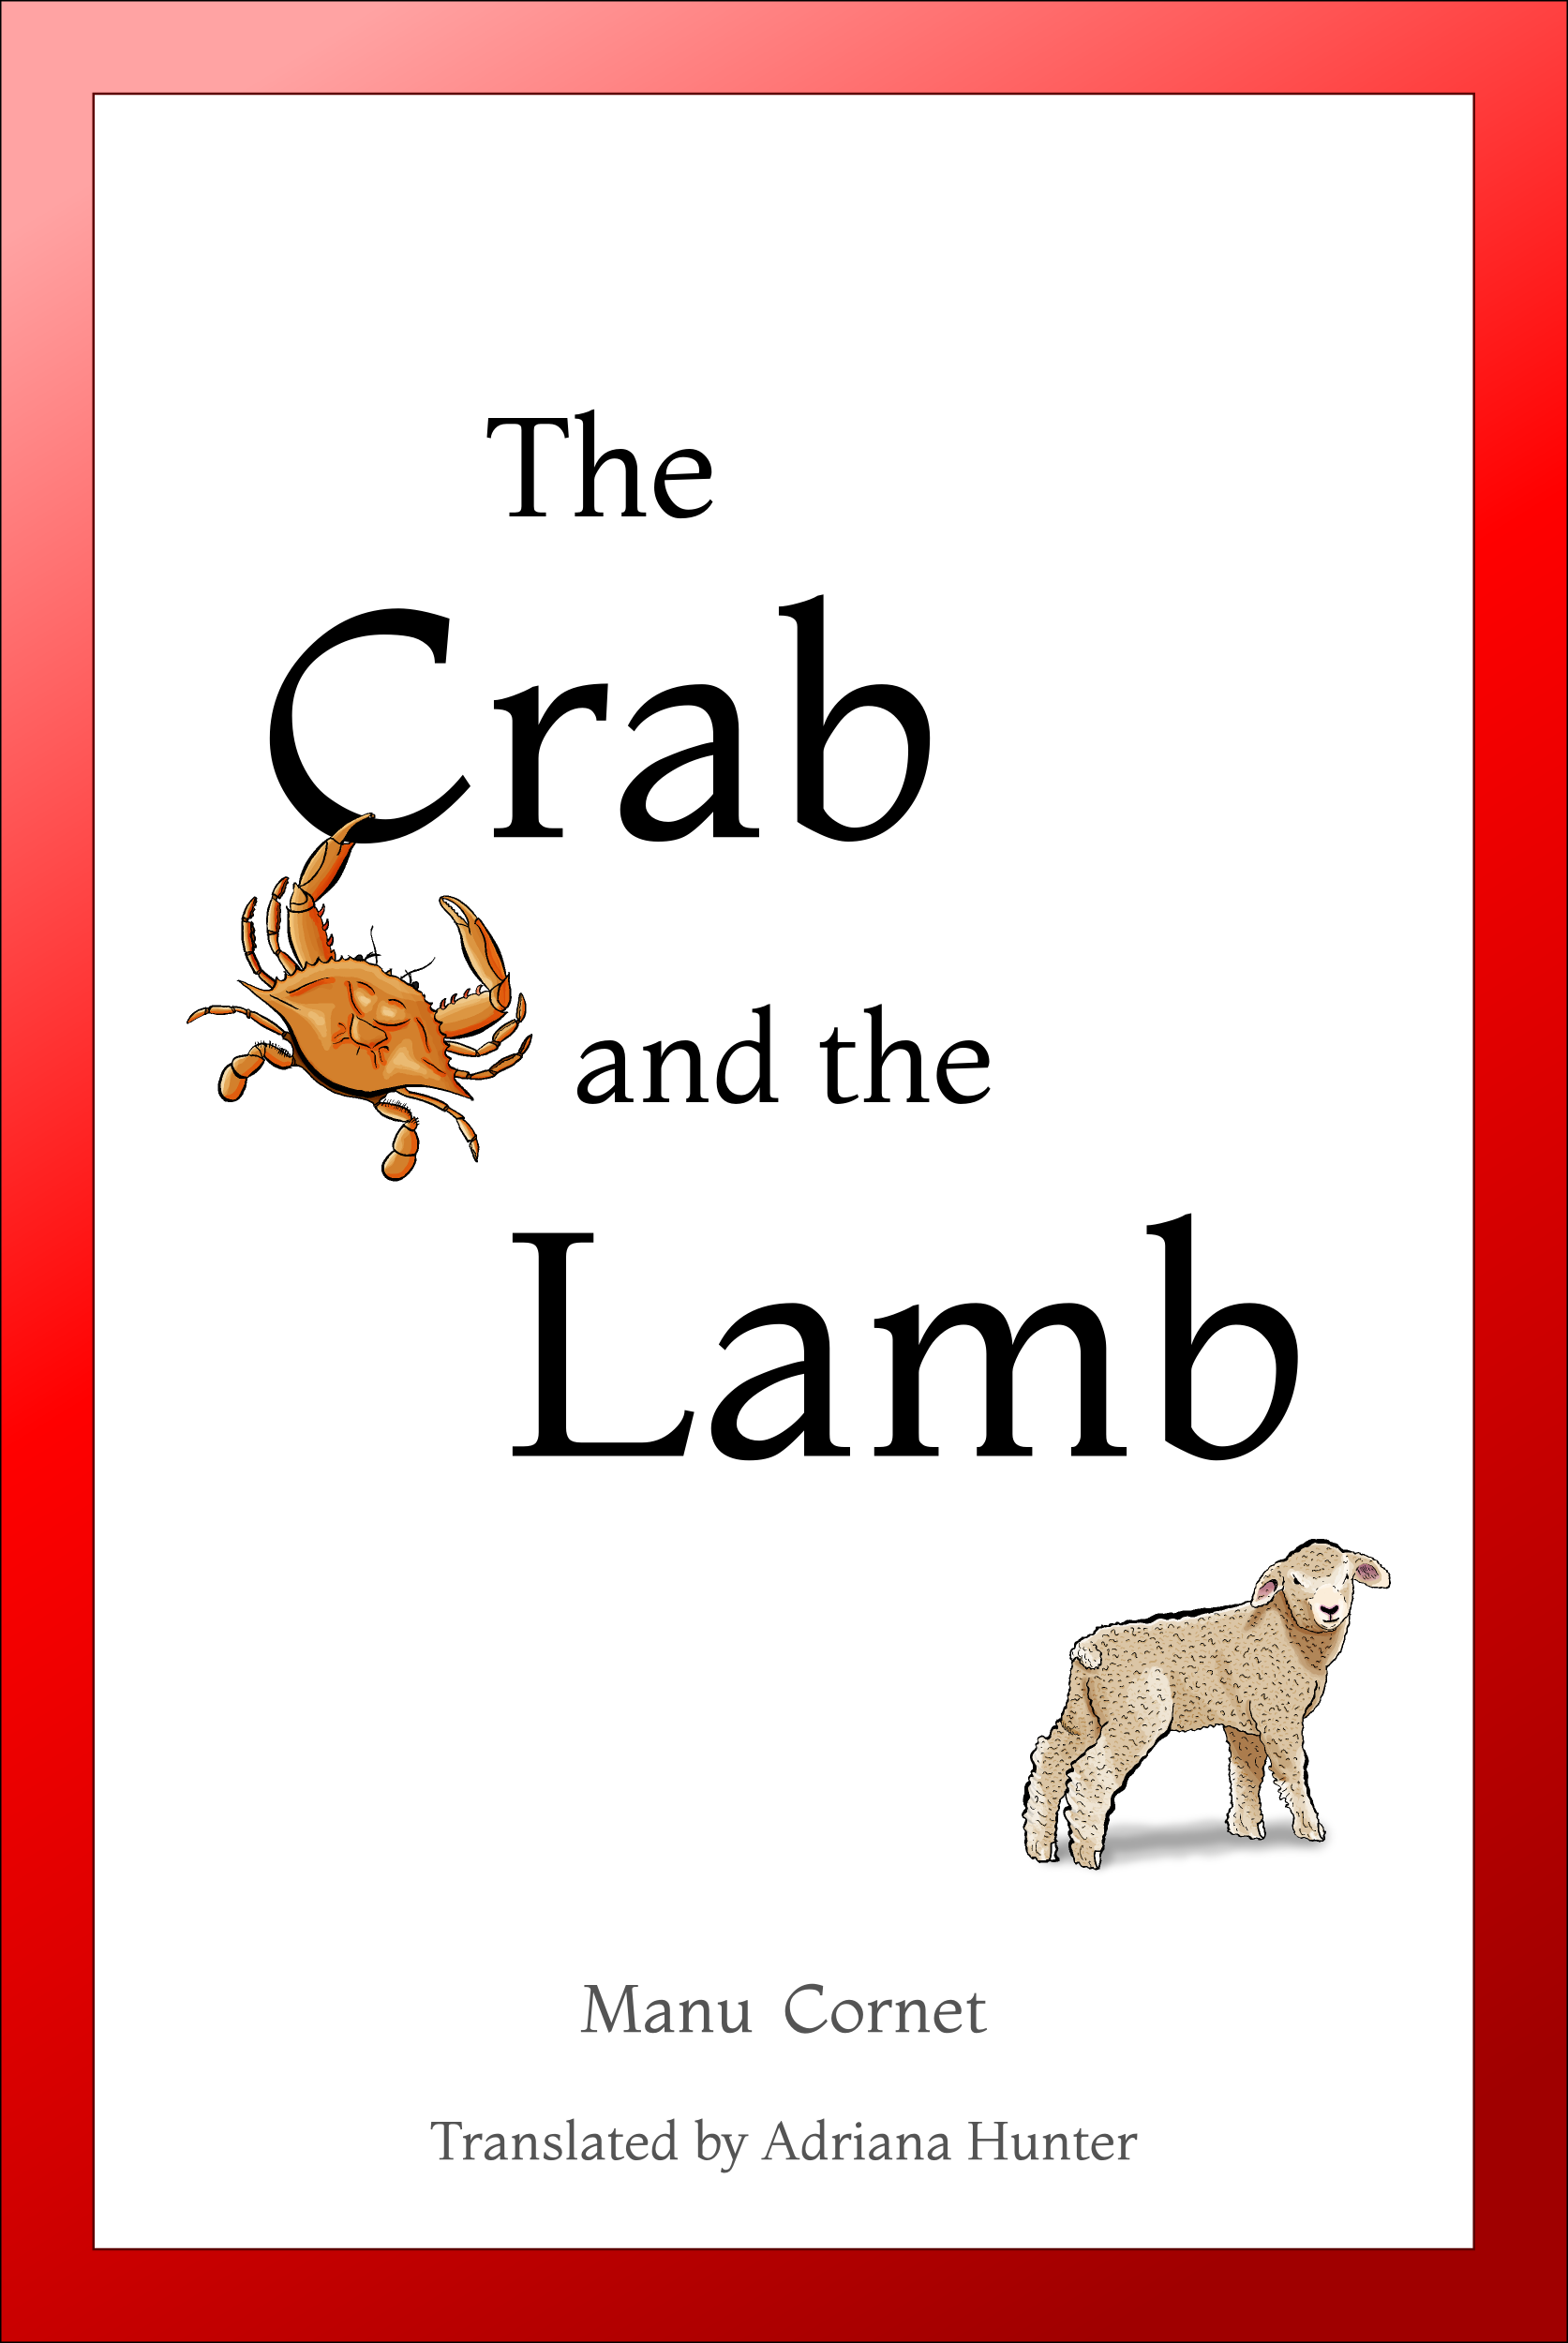 The Crab and the Lamb